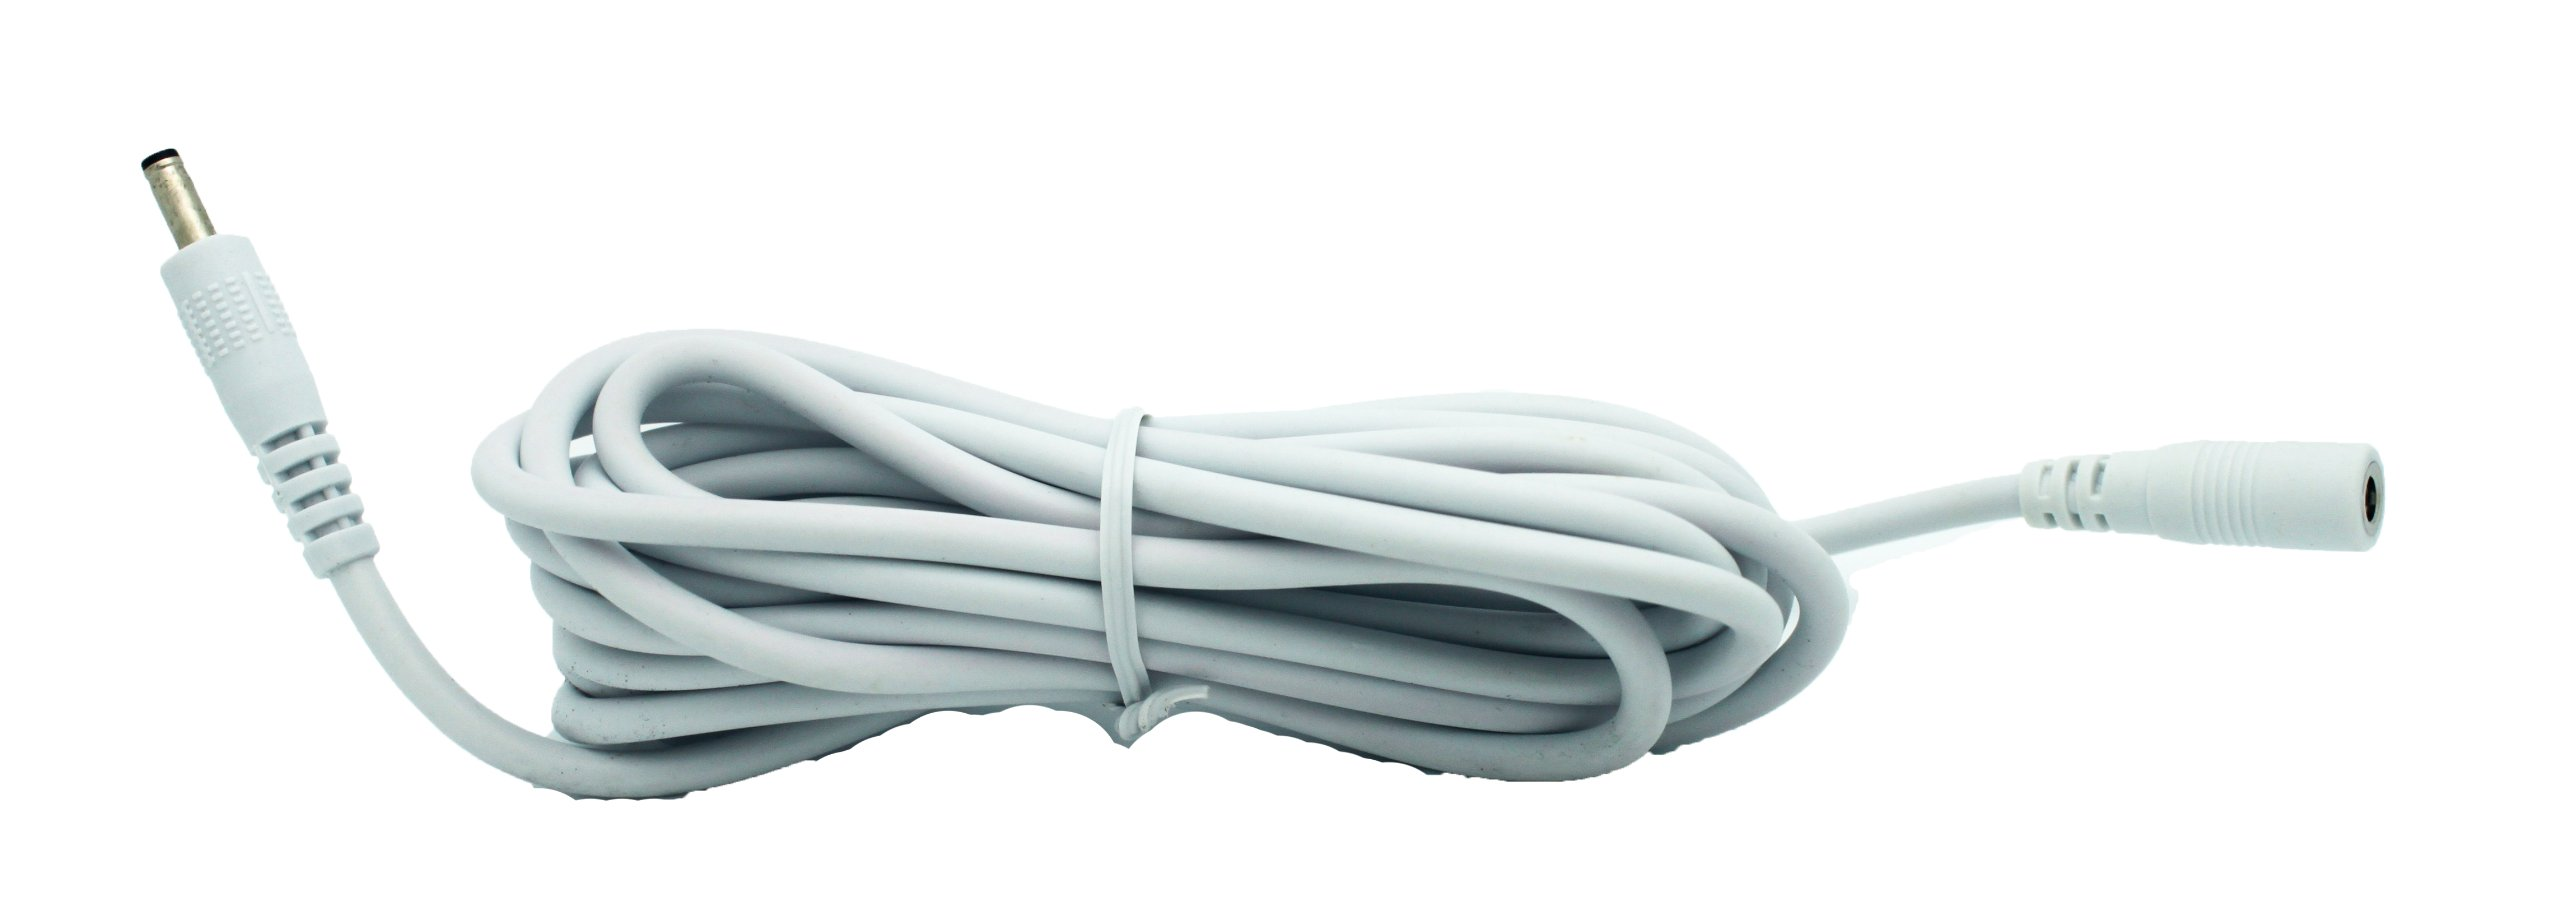 Compatible Foscam extension cord  10FT FI9821 FI8909 FI8910 10.2ft Smarthome IP